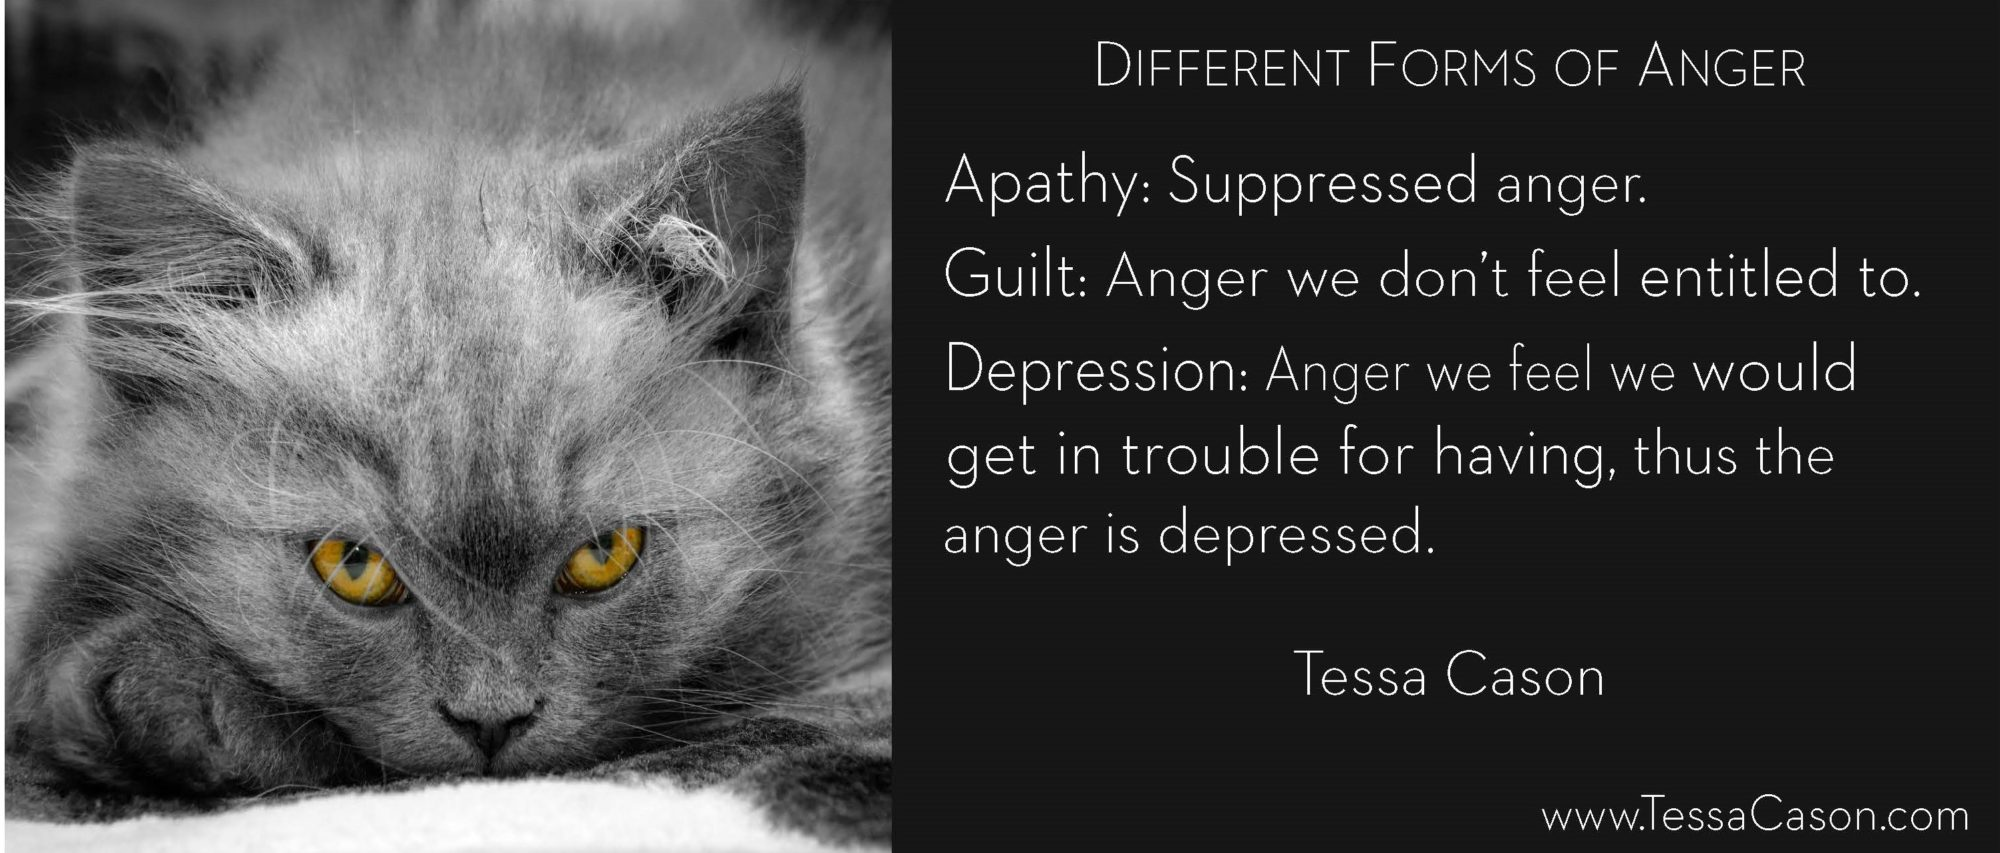 Different Forms of Anger